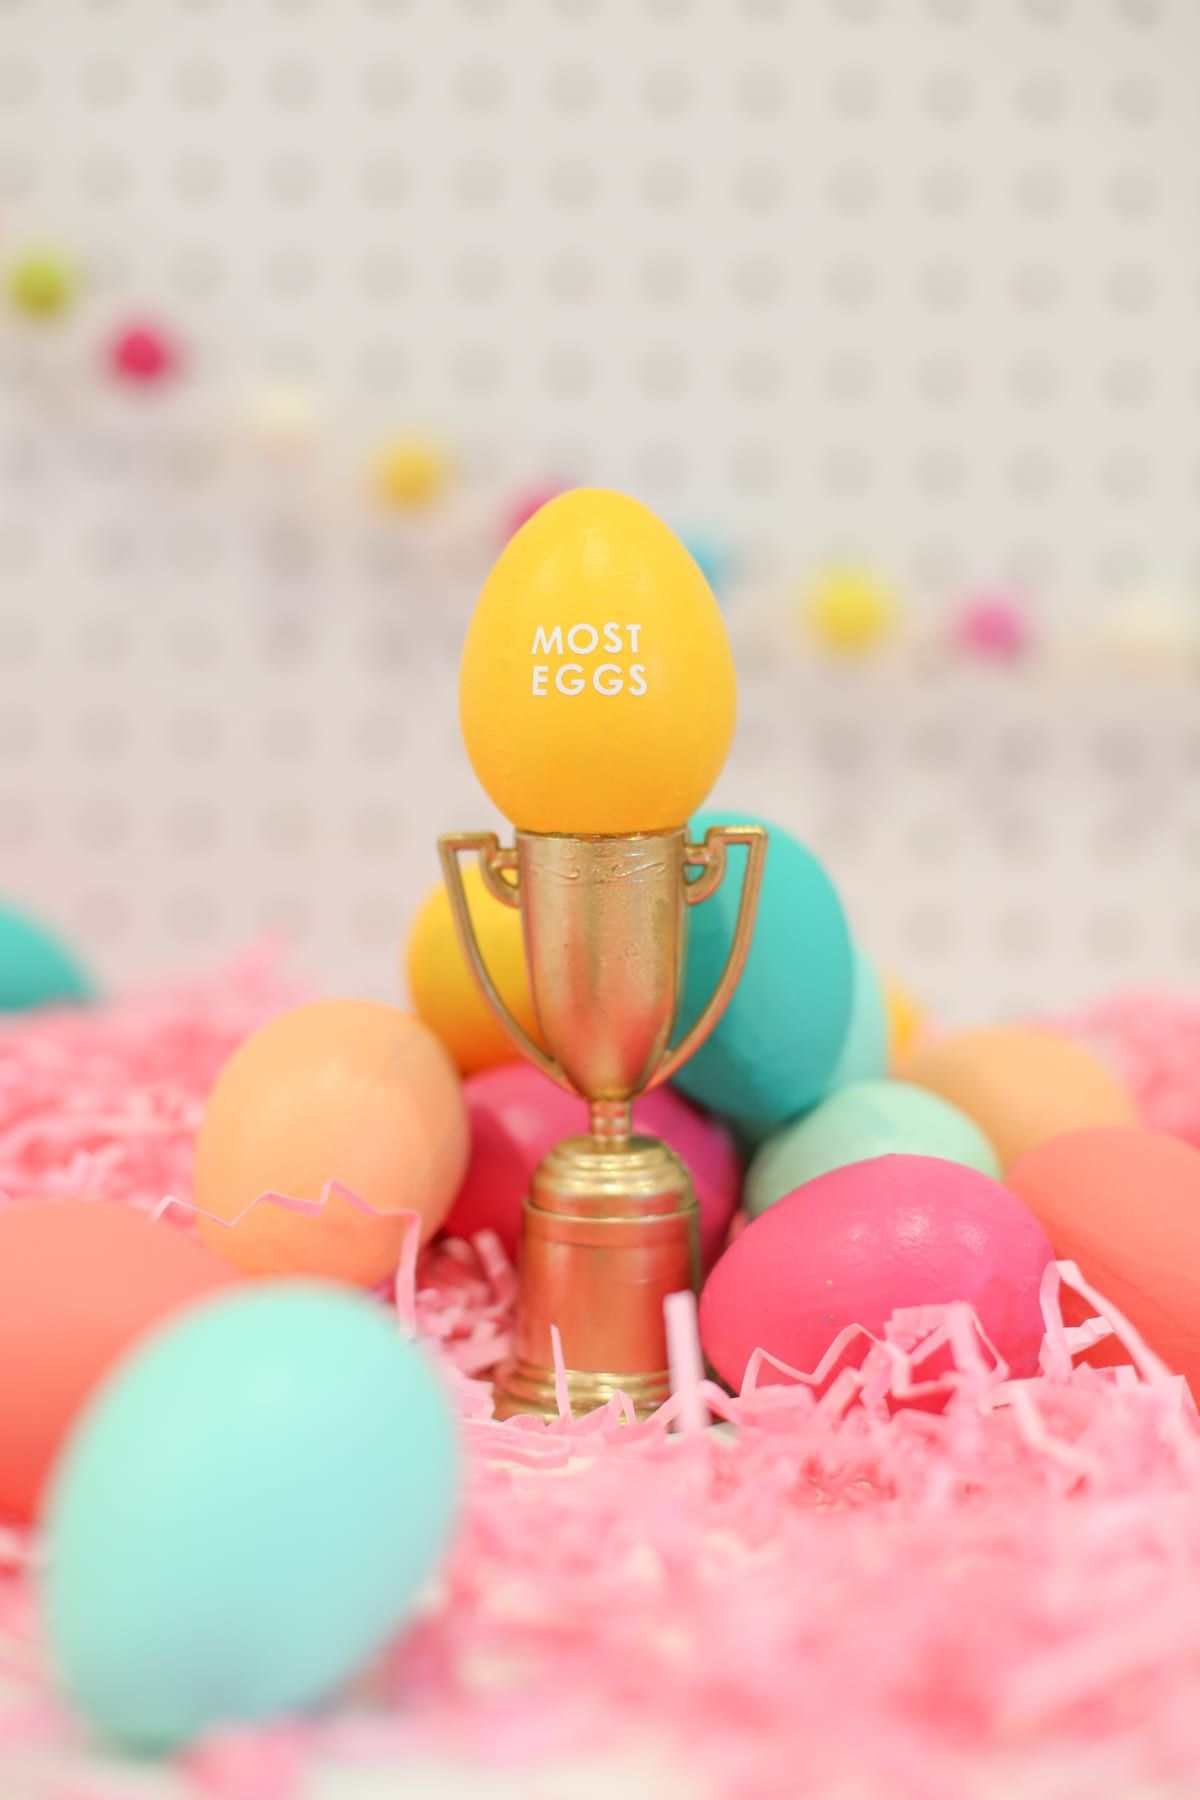 55 Easy Easter Crafts - Ideas for Easter DIY Decorations & Gifts